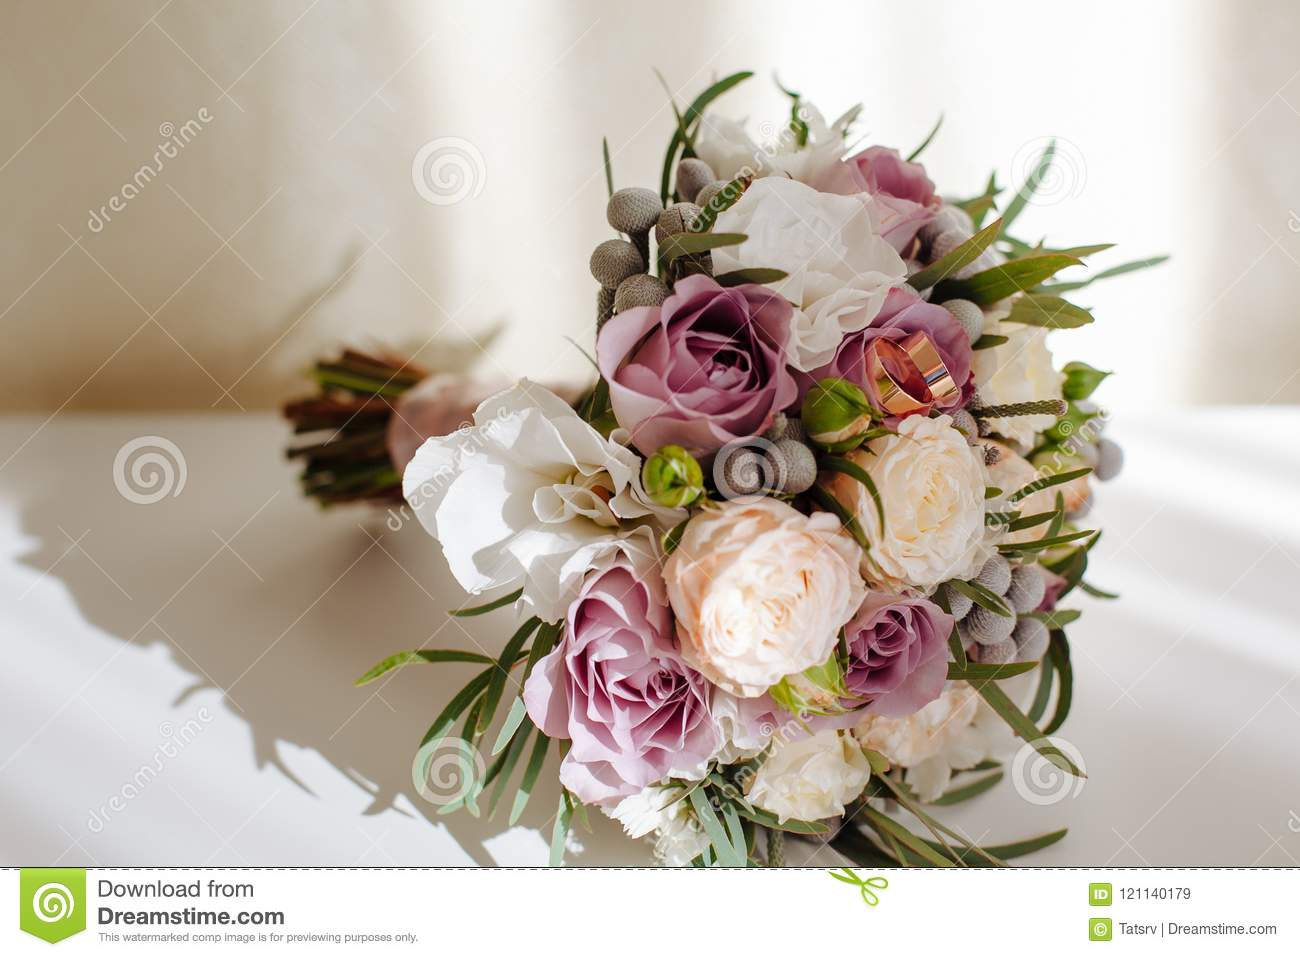 Soft And Tender Bridal Bouquet Of Roses Peonies And Greenery On White Table Stock Image Image Of Bohemia Decoration 121140179